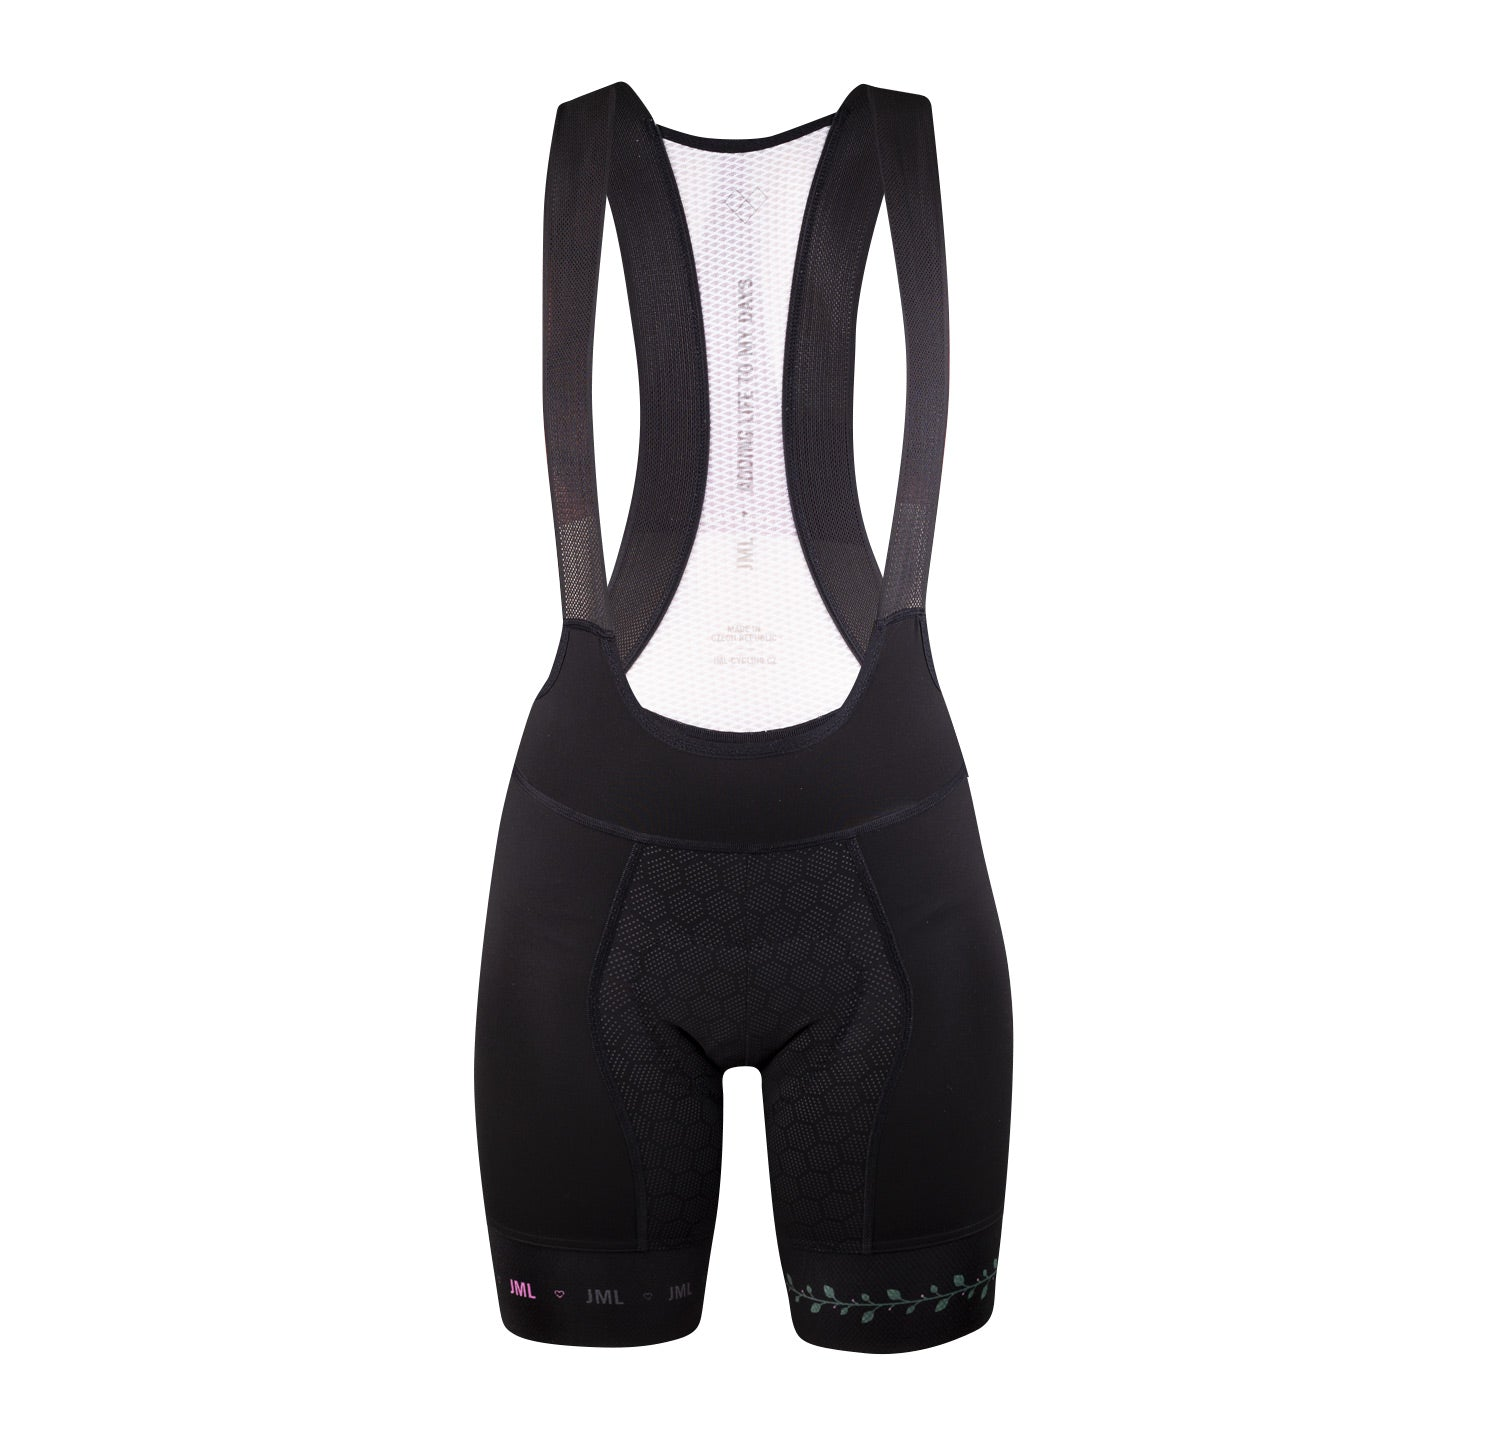 JML Torbole Bib Shorts - Jerseys Made with Love